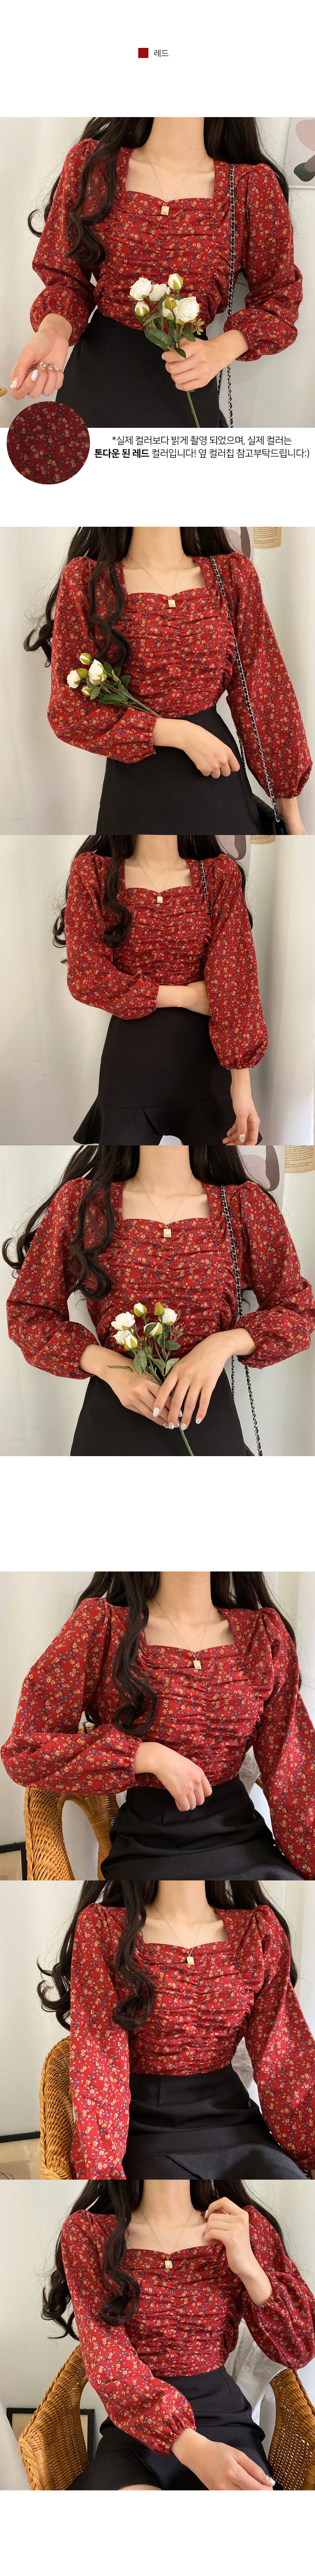 Dalba flower ruched blouse